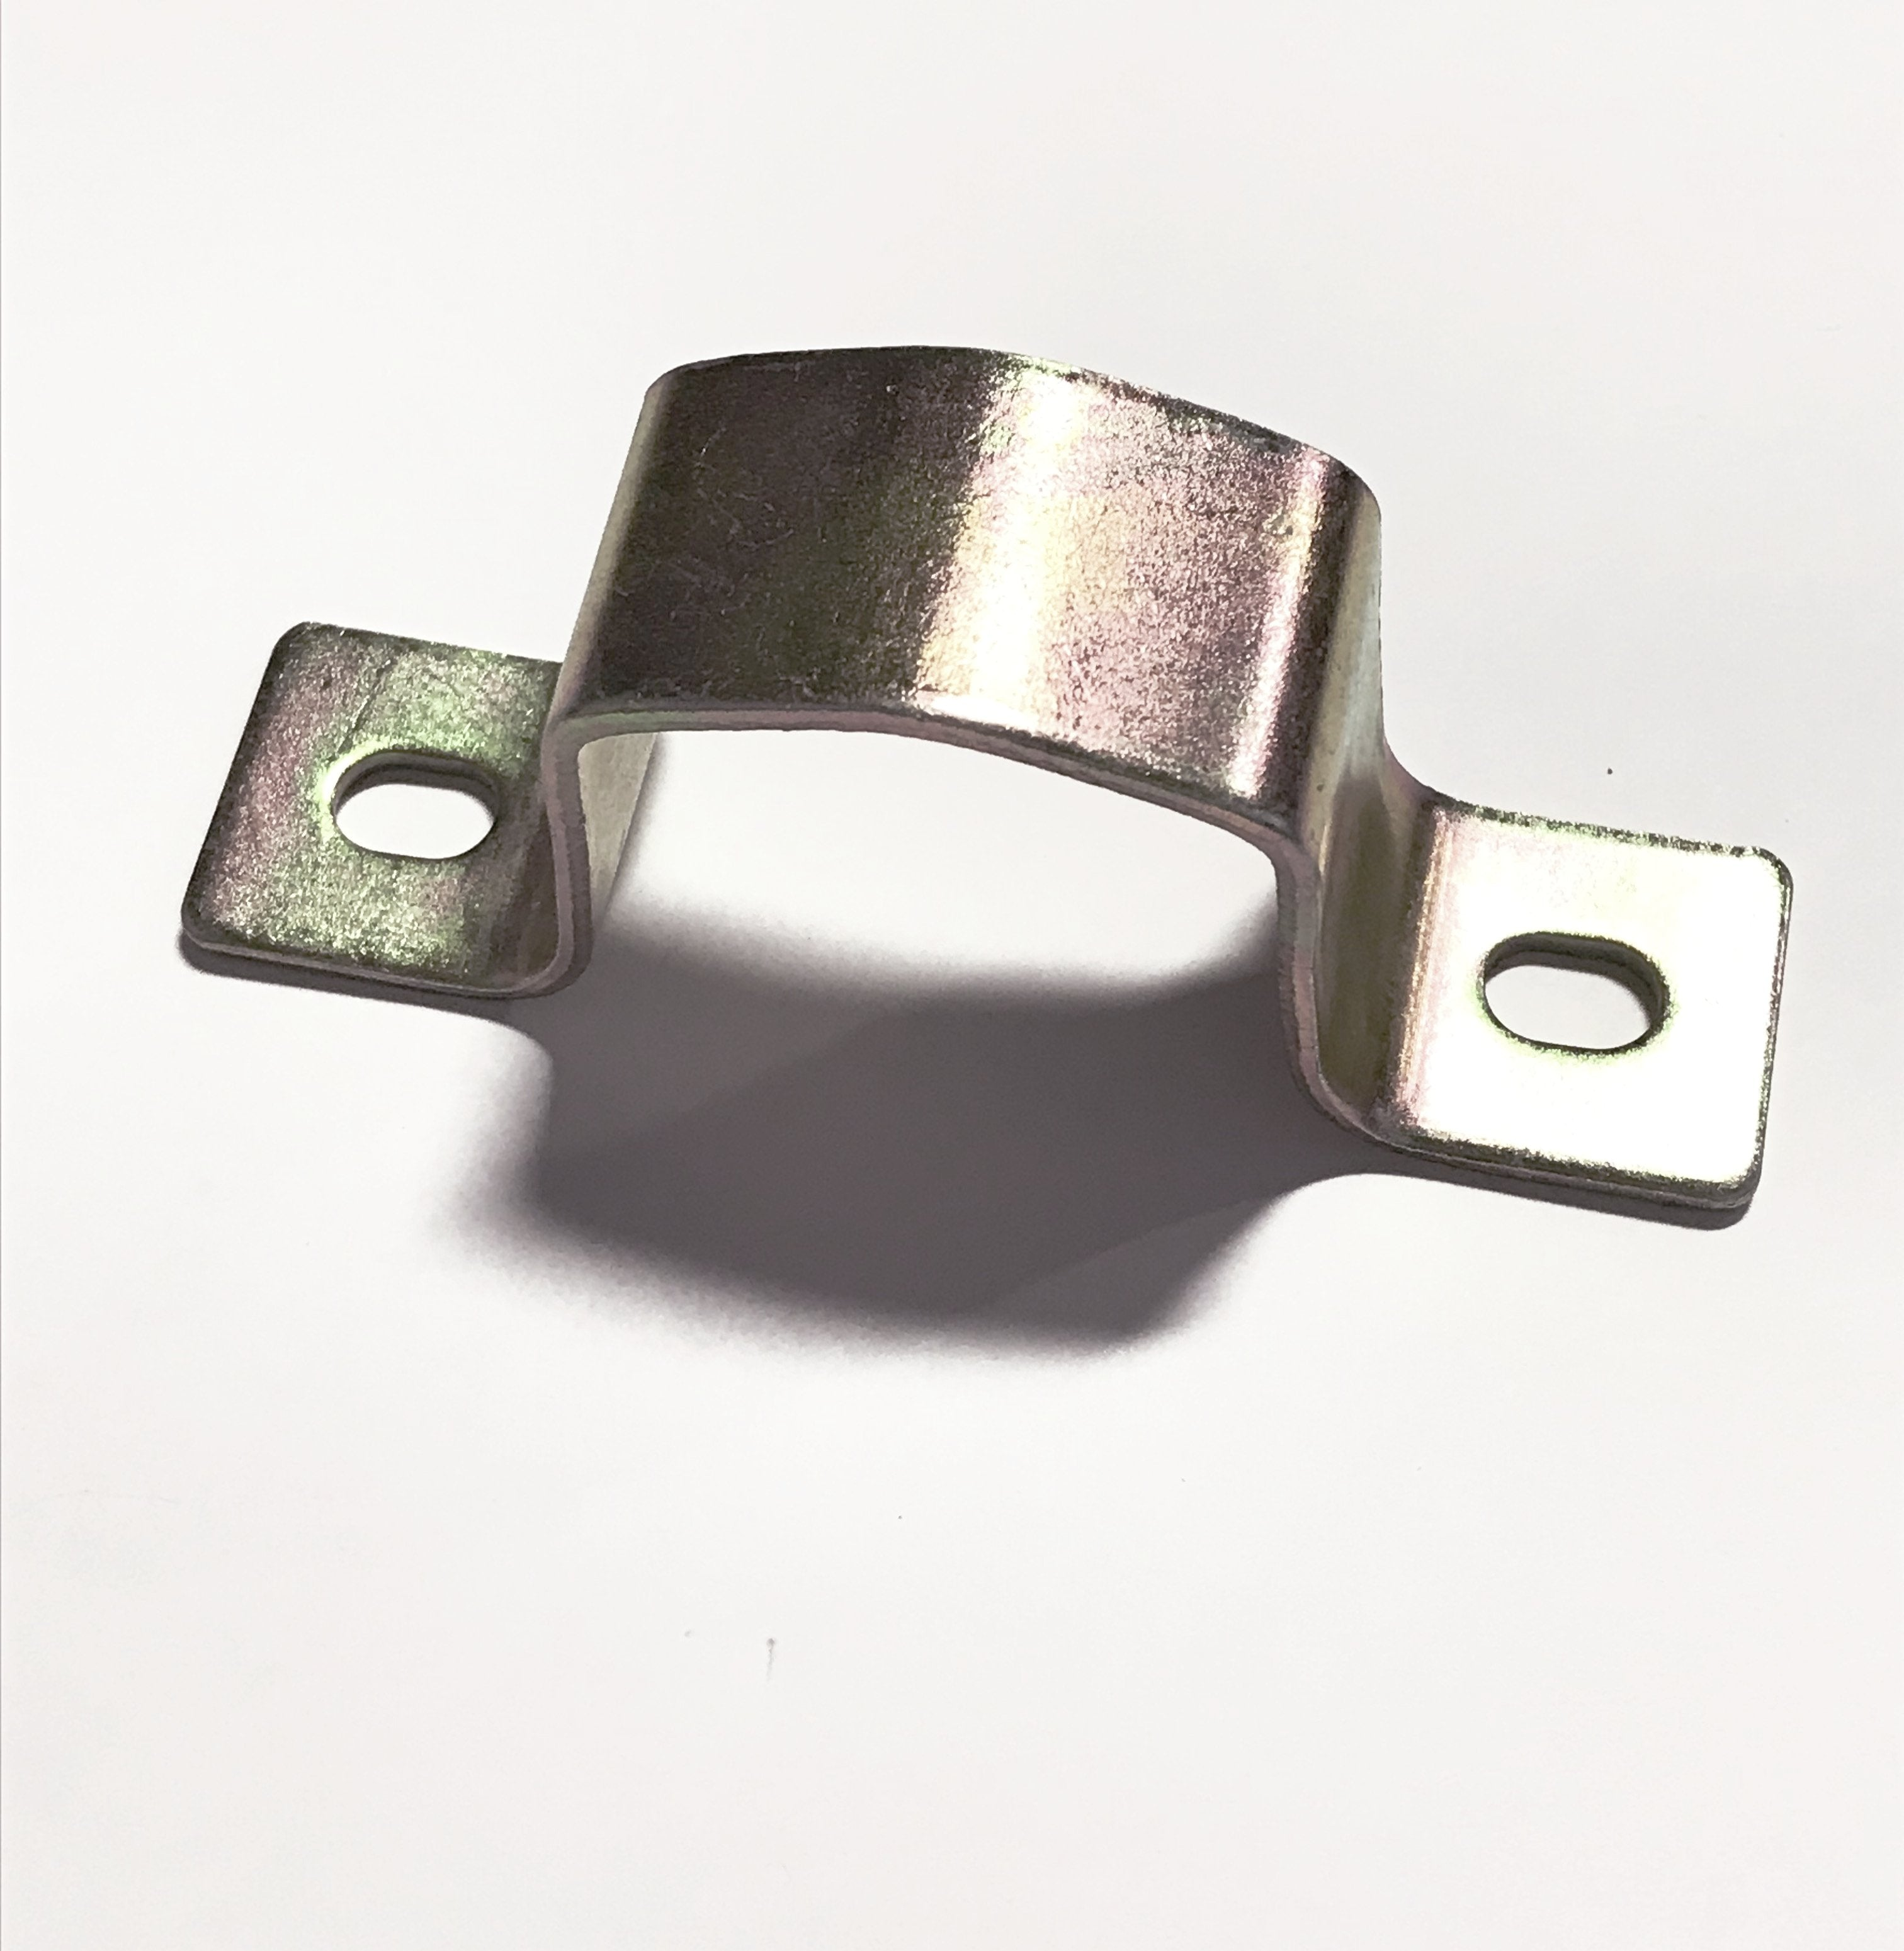 HDW-053 U-Clamp for Power Unit